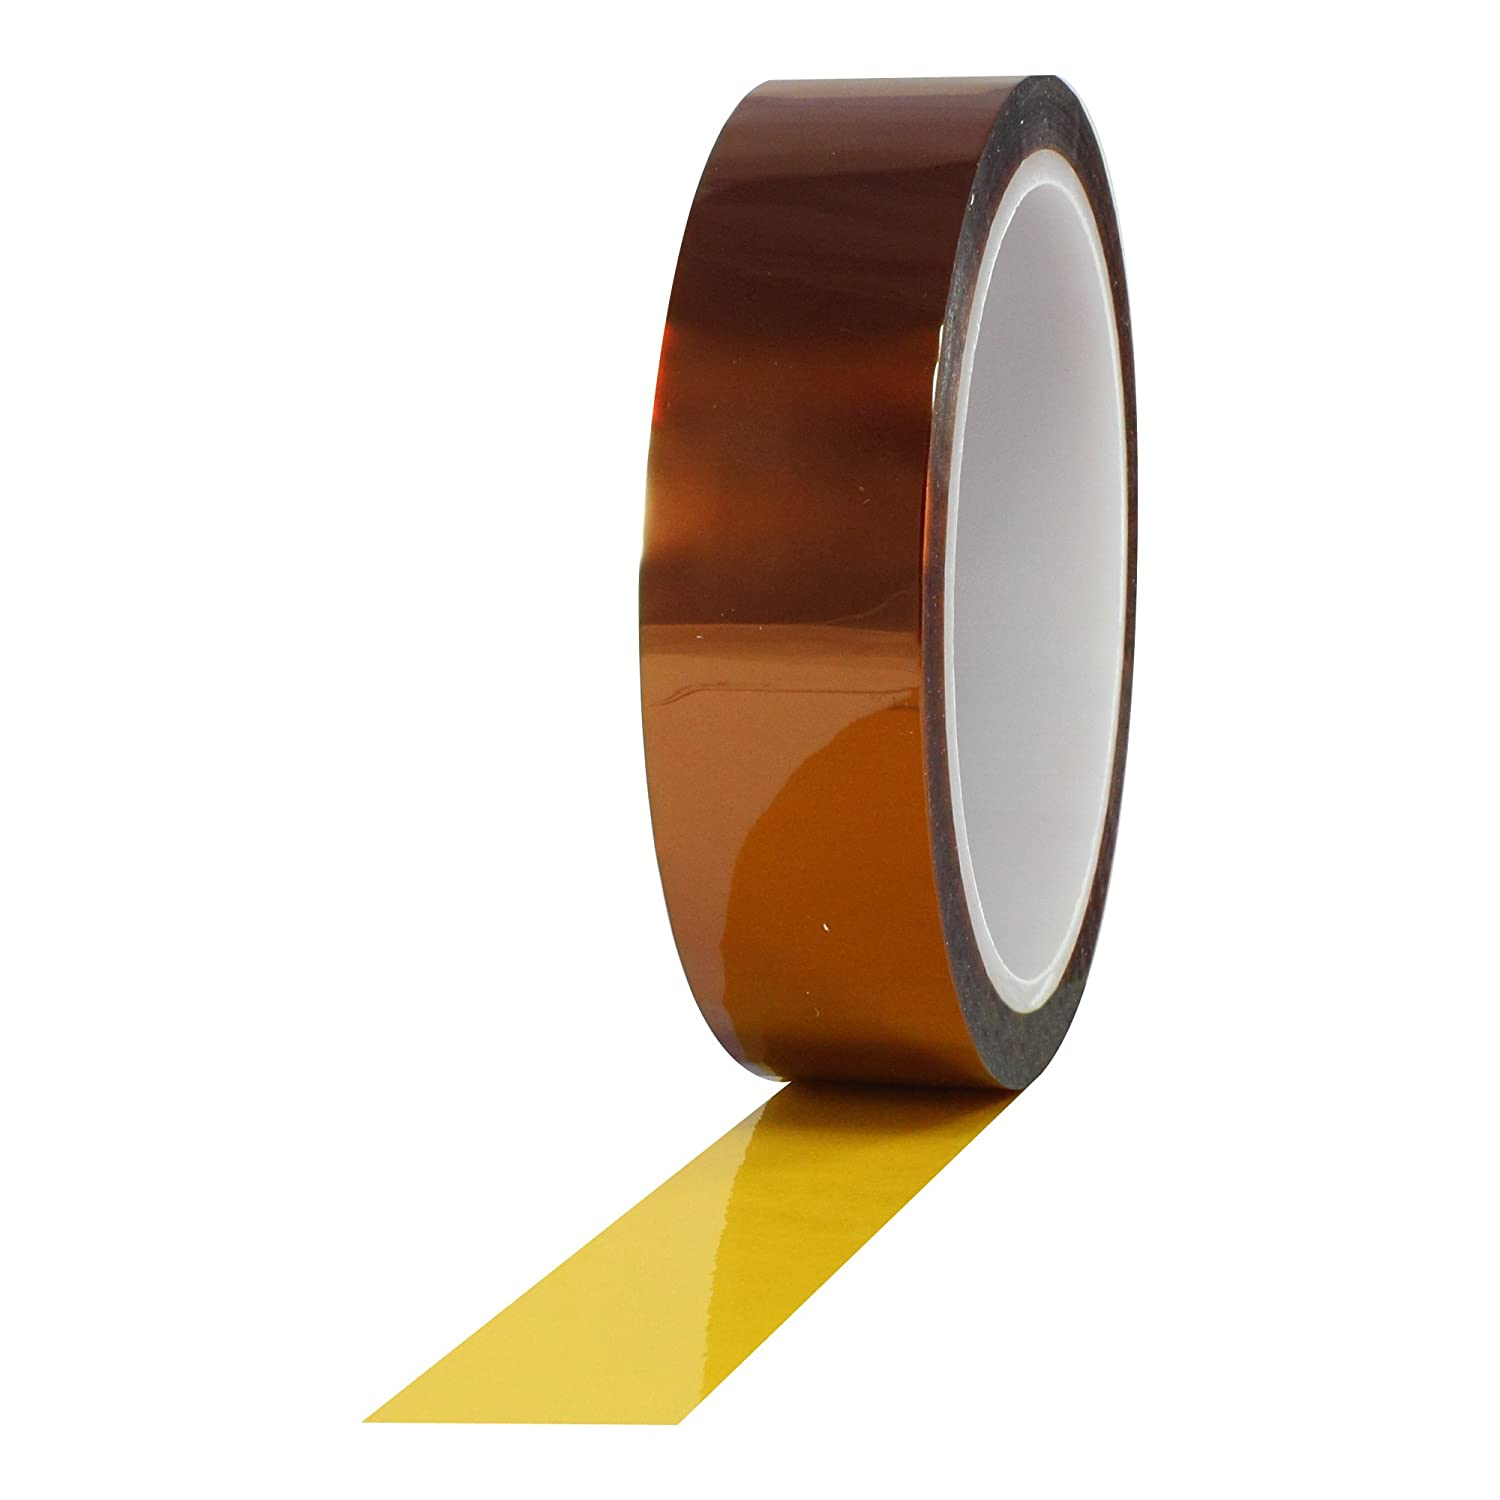 Pack of 72 36 yds Length x 1//2 Width 7500V Dielectric Strength ProTapes Pro 950 Polyimide Film Tape Pack of 72 36 yds Length x 1//2 Width ProTapes /& Specialties Pro-950-2.5-1//2x36